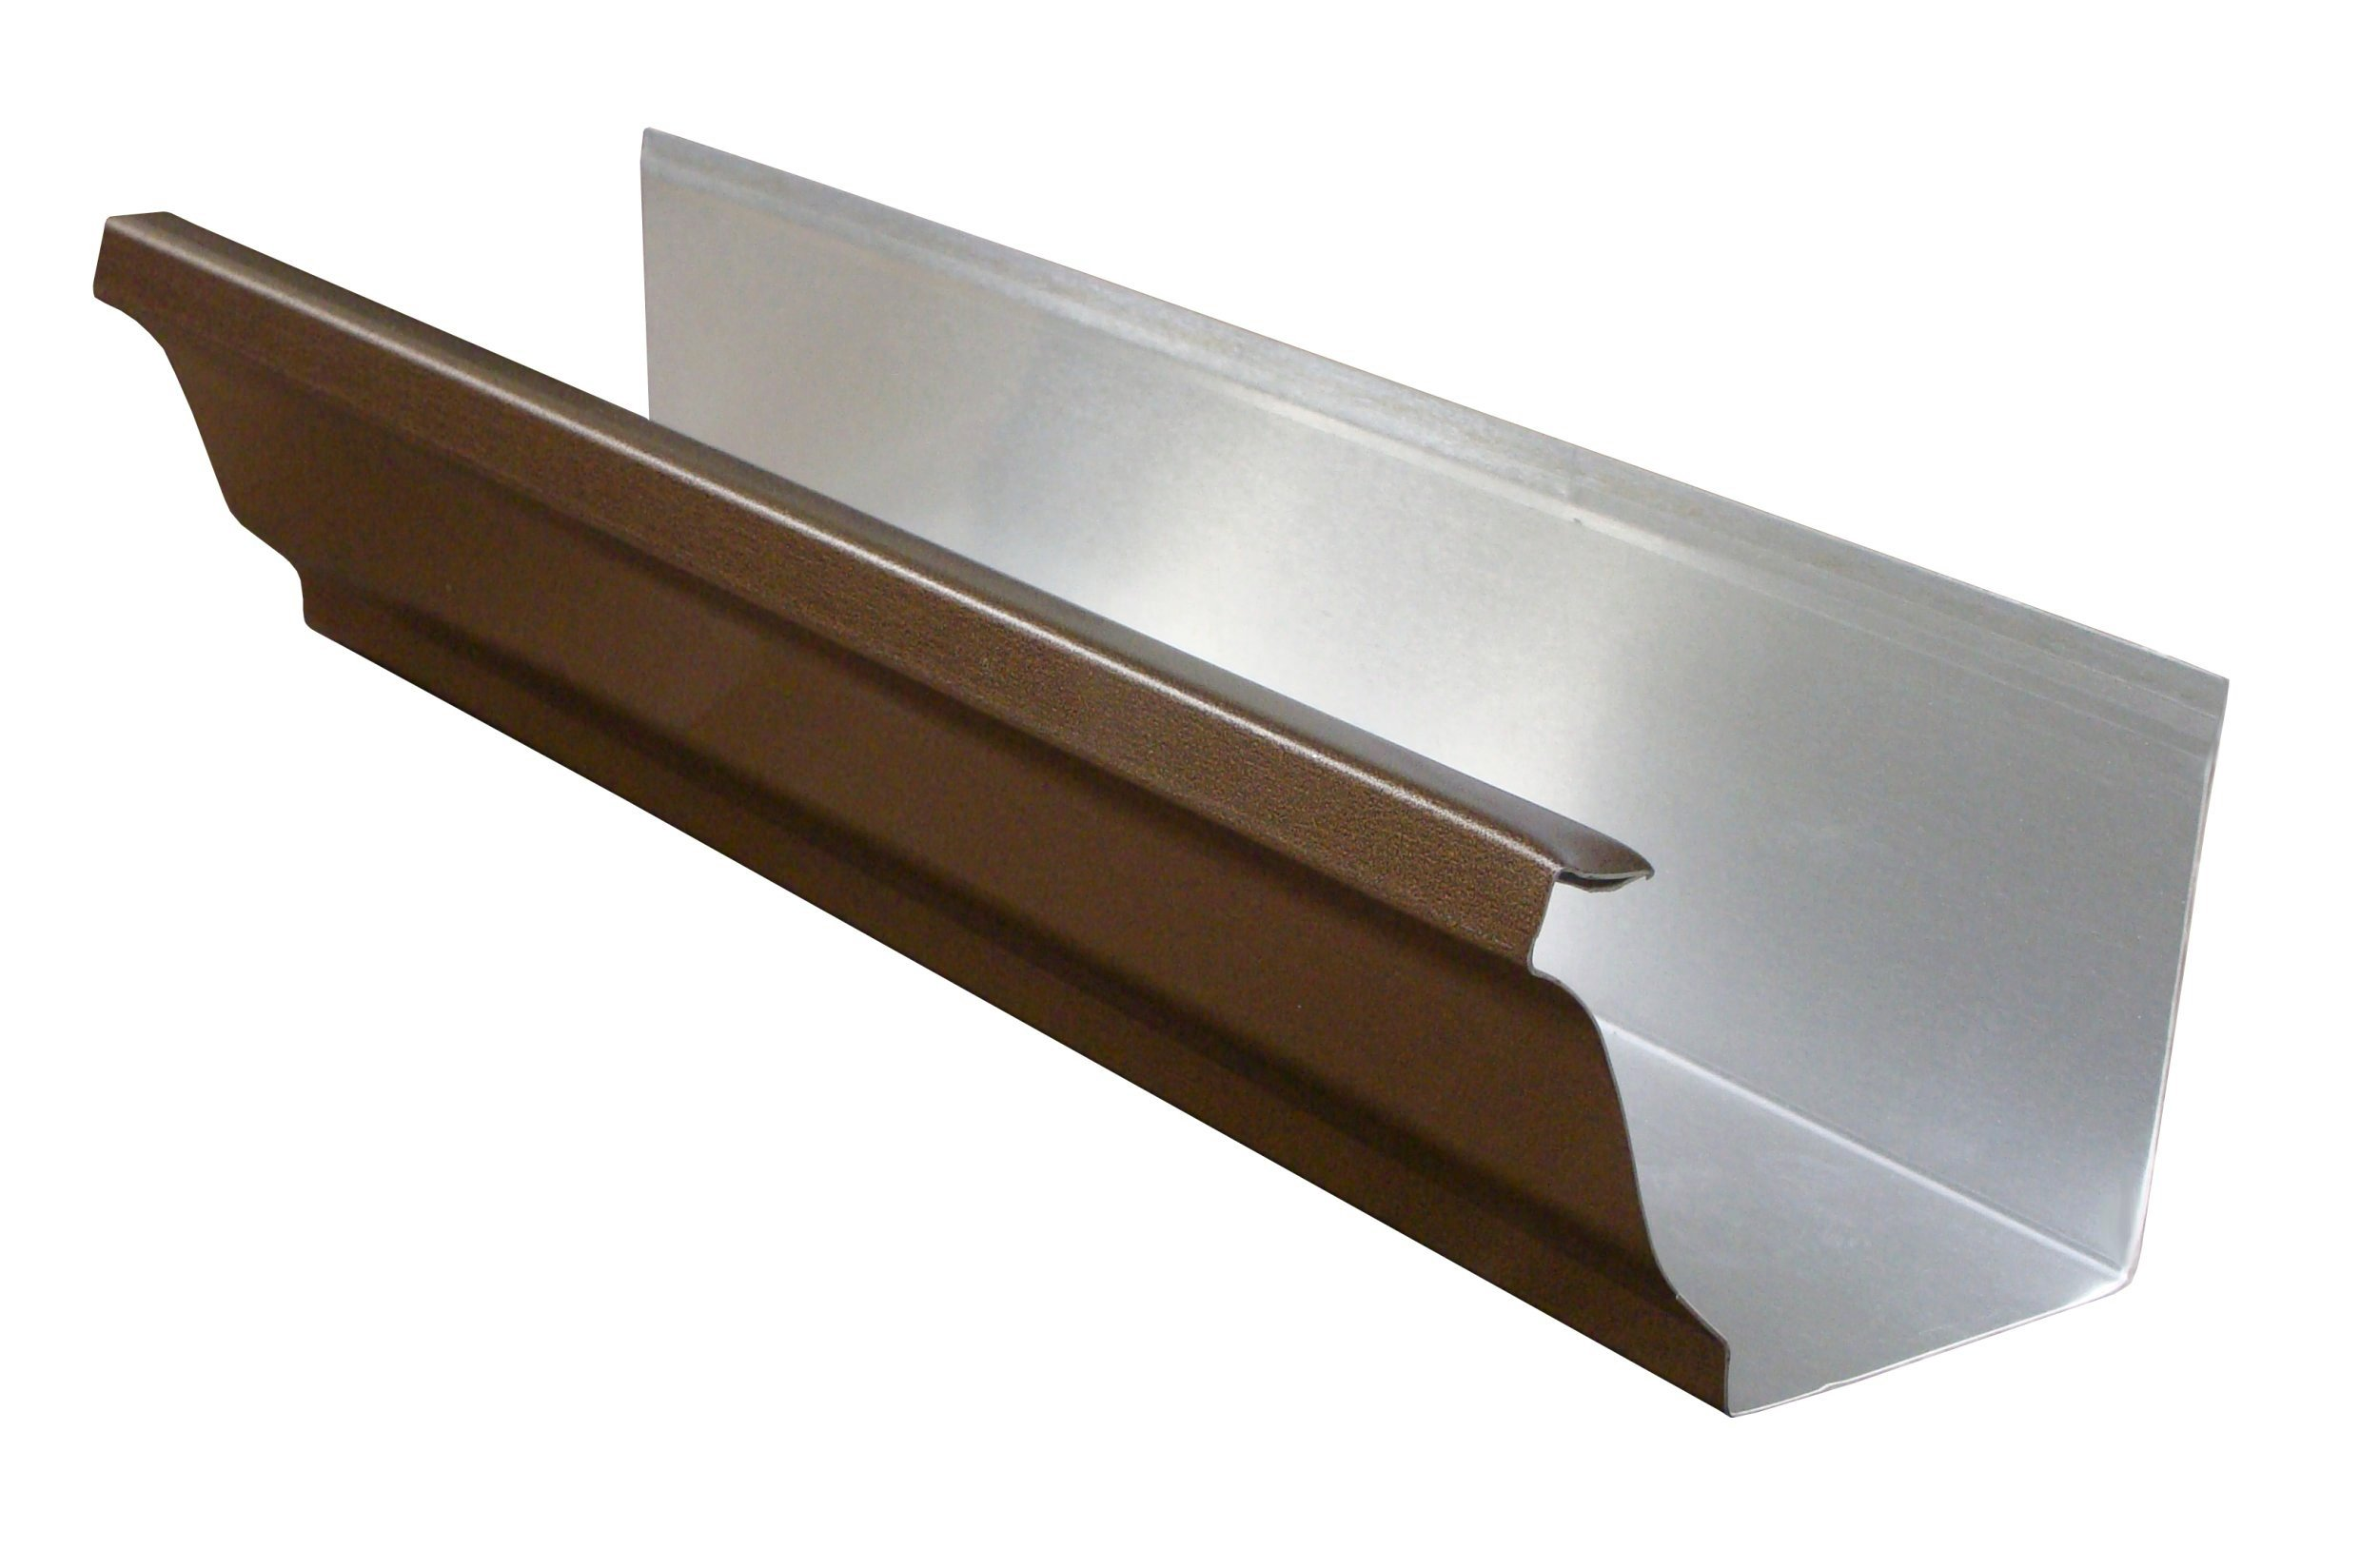 The Amerimax Home Products 10 ft. Aluminum Gutter The Amerimax Home Products 10 ft. Aluminum Gutter features a baked-on black finish to complement your home and durable aluminum construction for long life. Use this gutter to control runoff and help prevent foundation erosion.